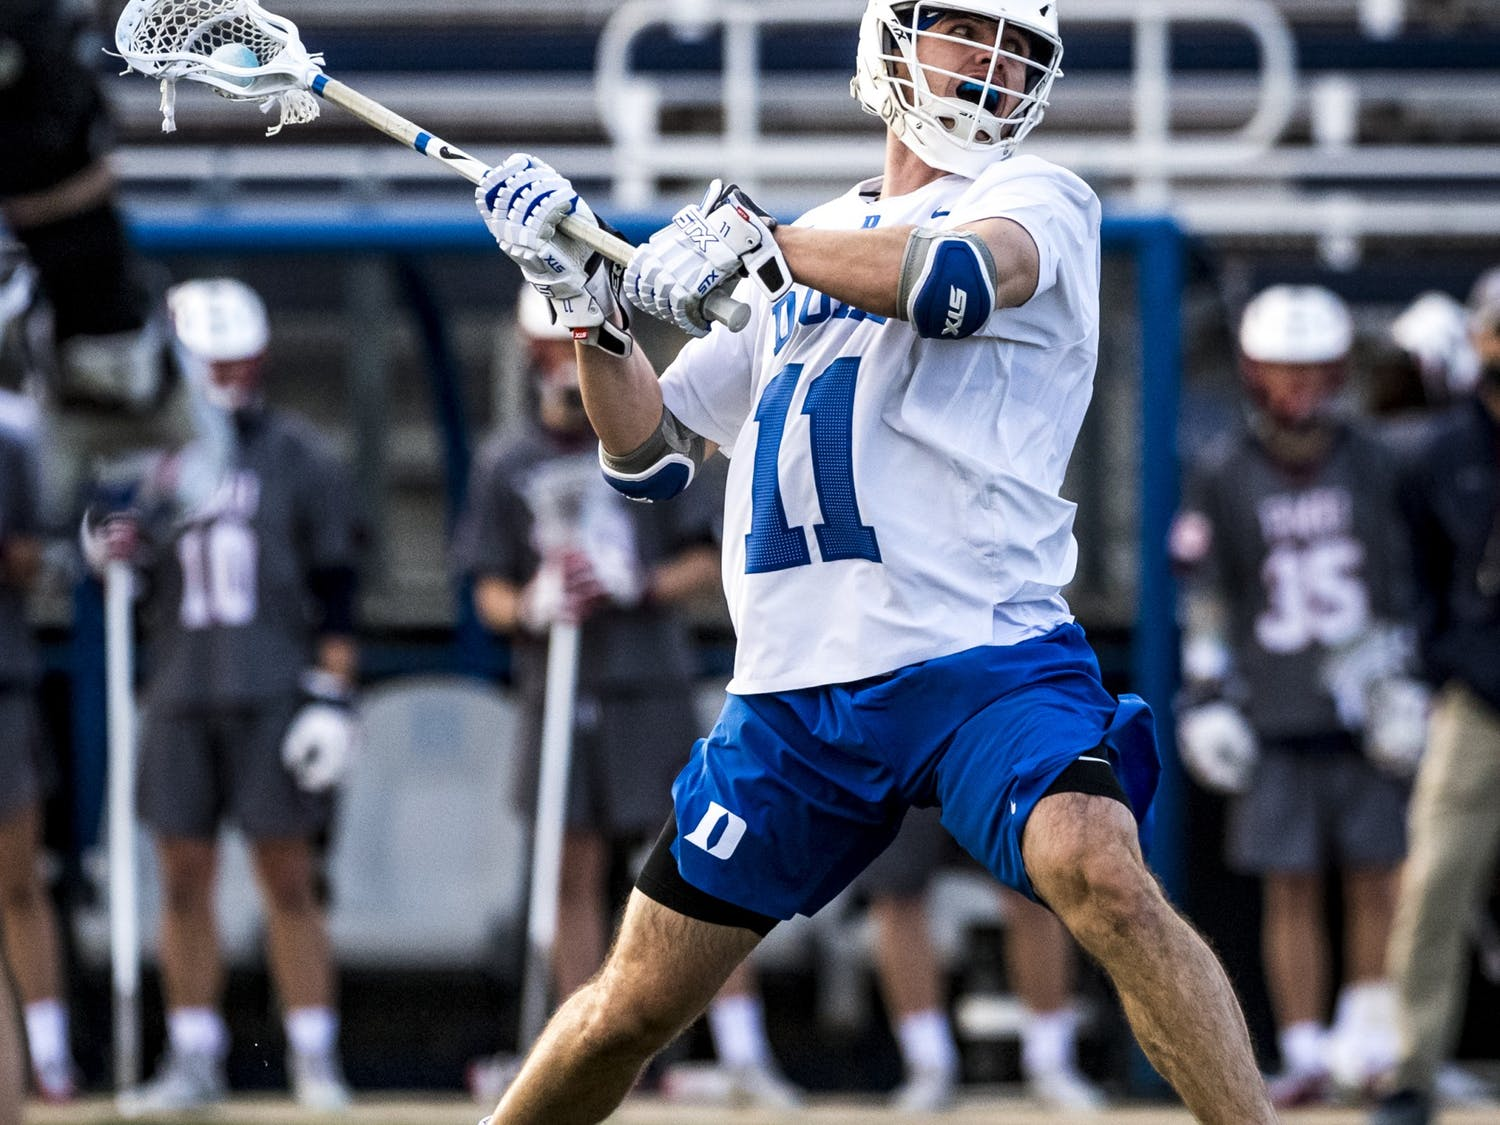 Graduate student Terry Lindsay opened up the scoring for the Blue Devils Sunday.